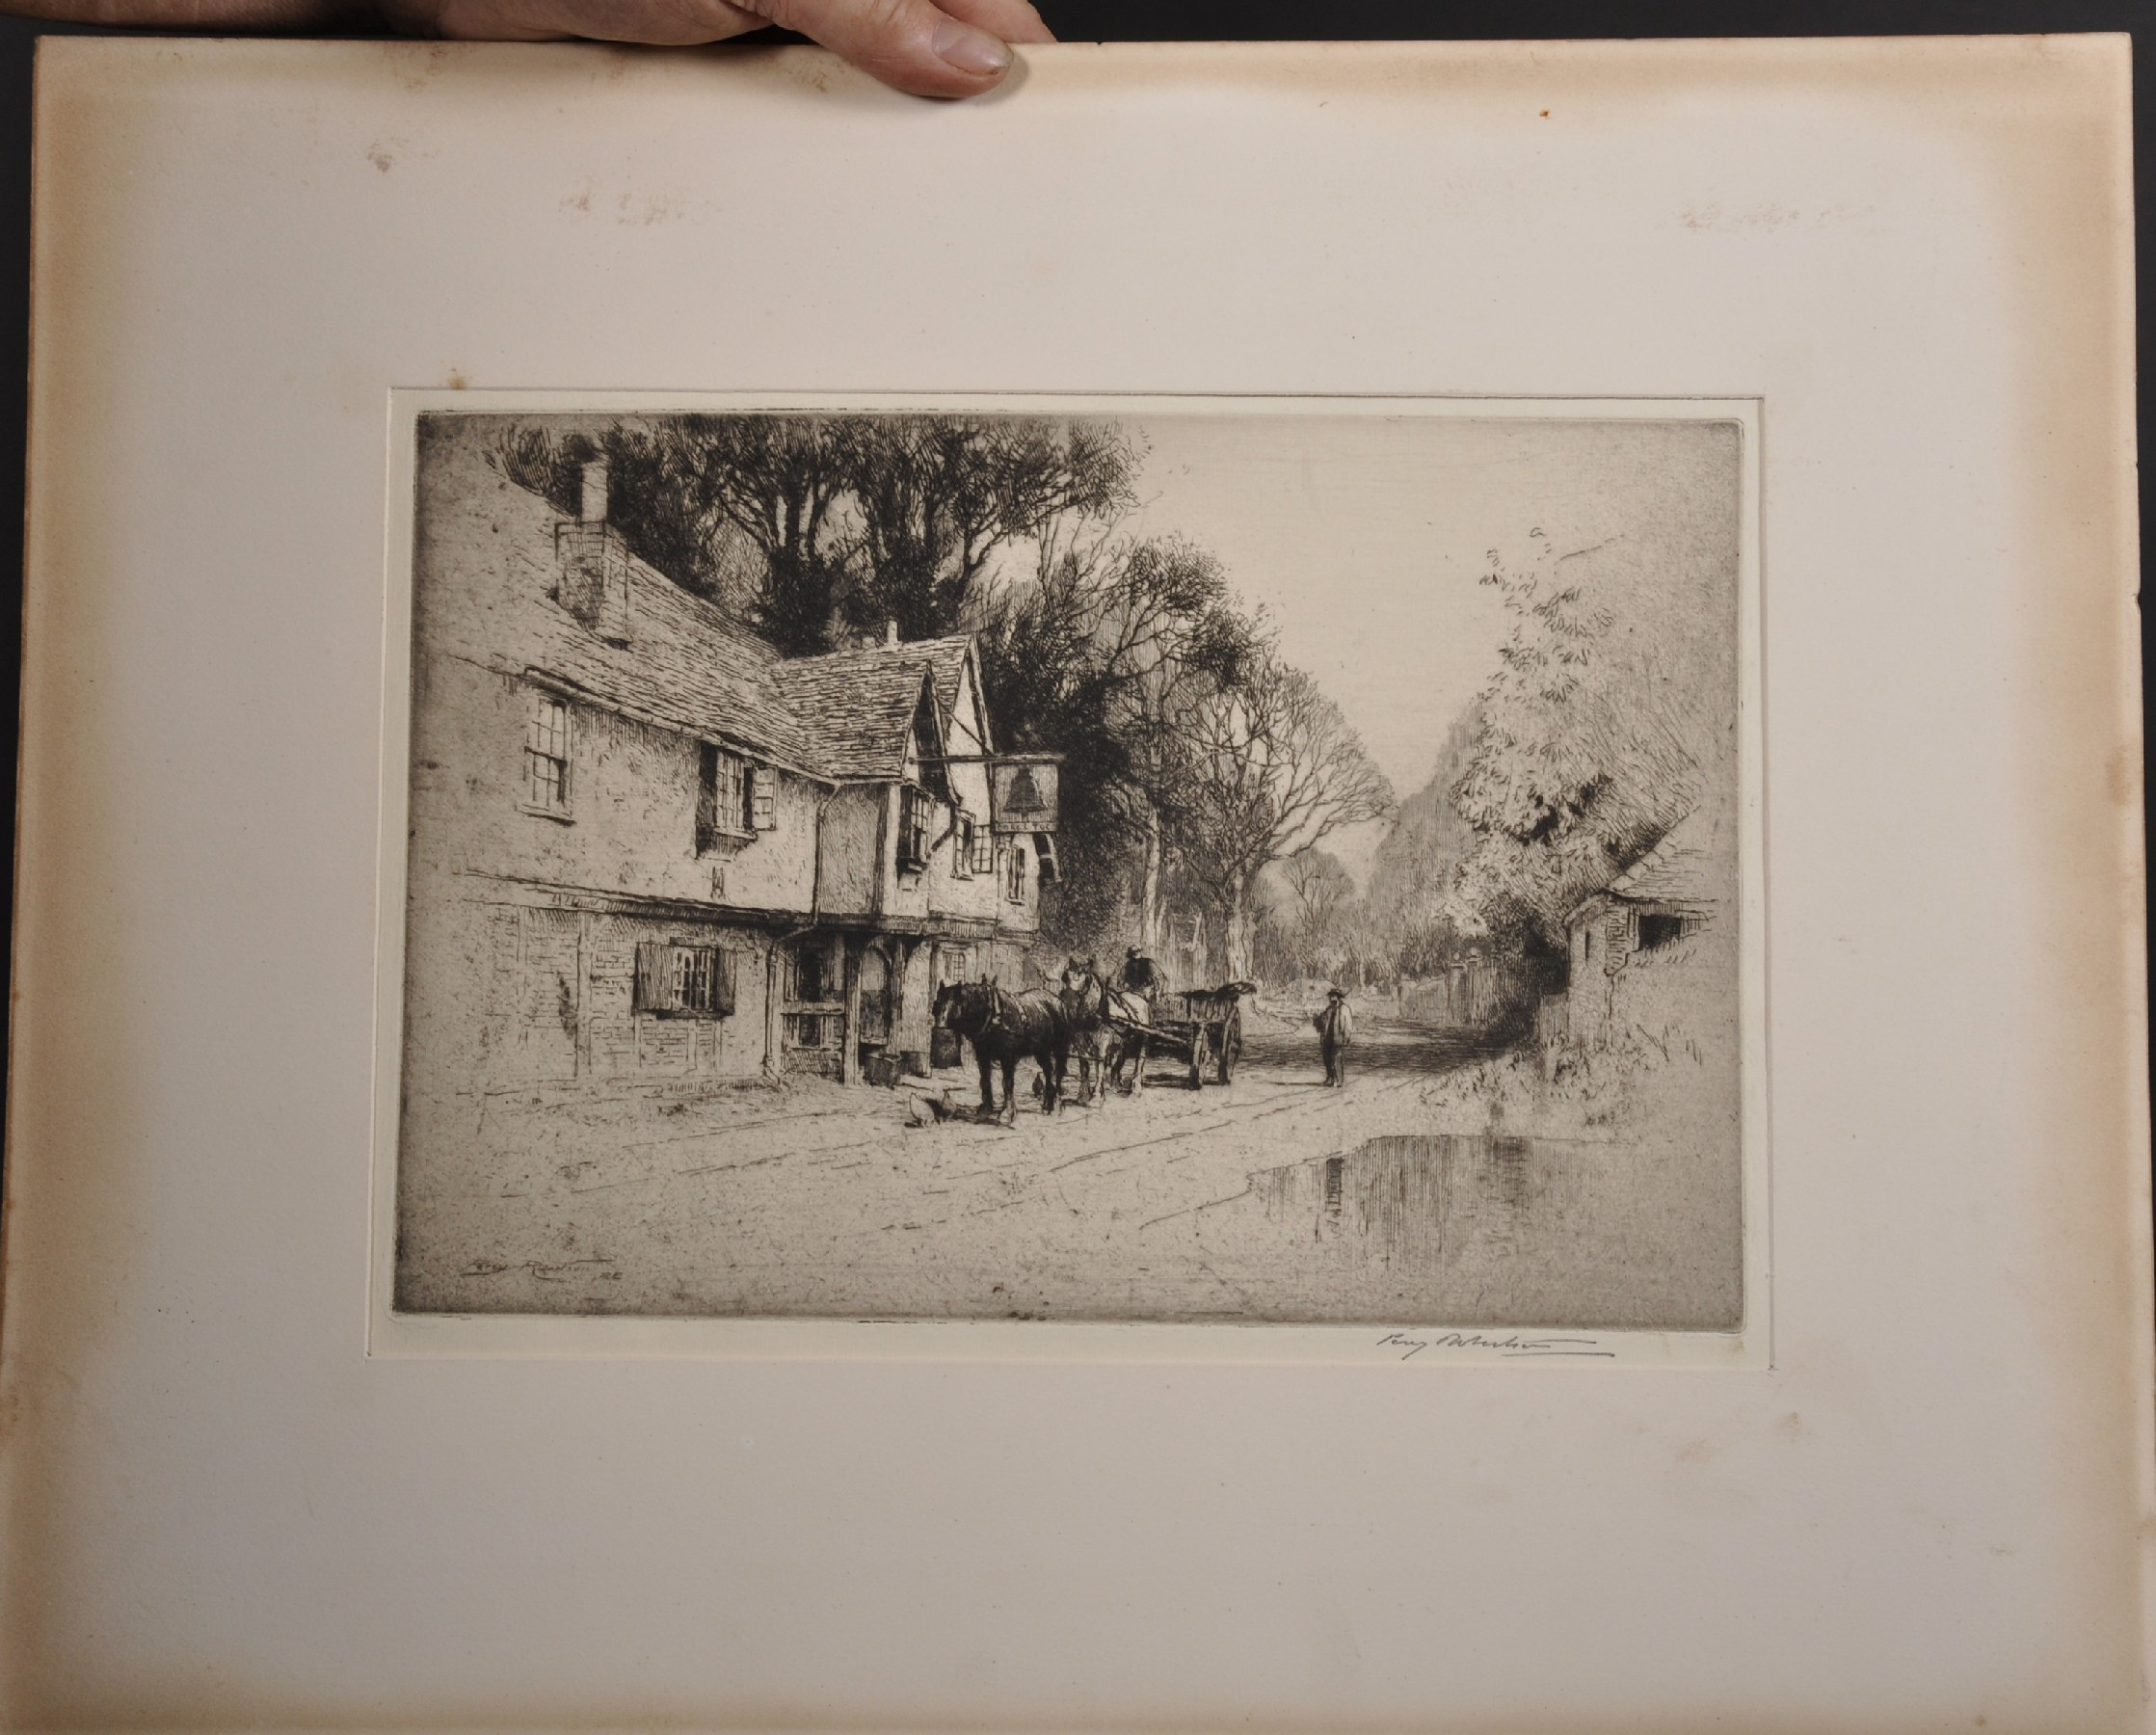 Percy Robinson (20th Century) British. A Village Lane with a Horse and Cart, Etching, Signed in - Image 2 of 4